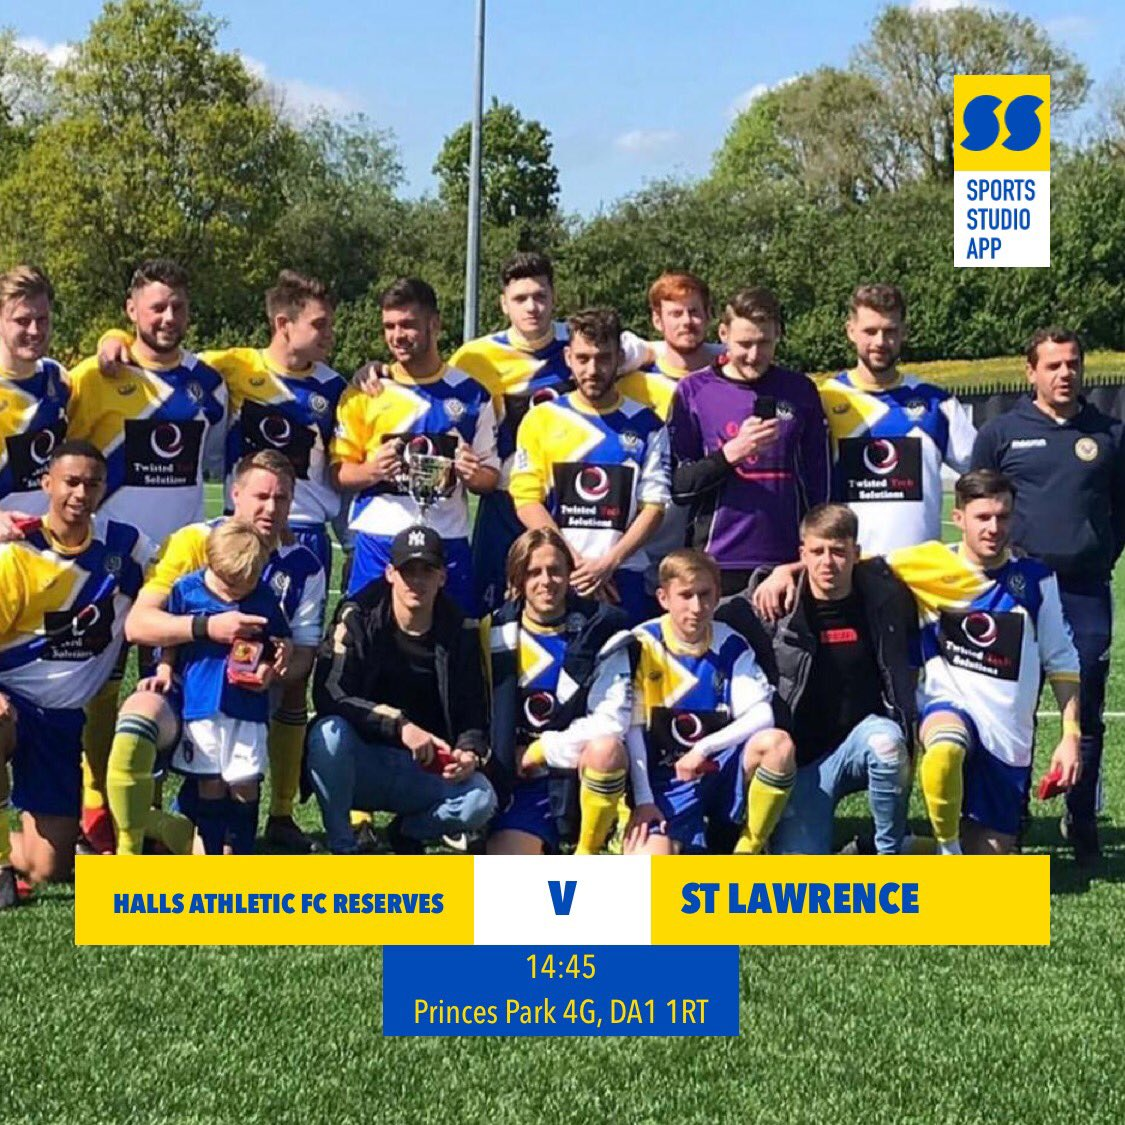 test Twitter Media - Reserves are back after a week off and host unbeaten top of the league  St Lawrence. Huge game and after a disappointing defeat early in the season the boys will be ready to make amends 💛💙💛💙 #HAFC #100thseason https://t.co/ZuiCccFYME